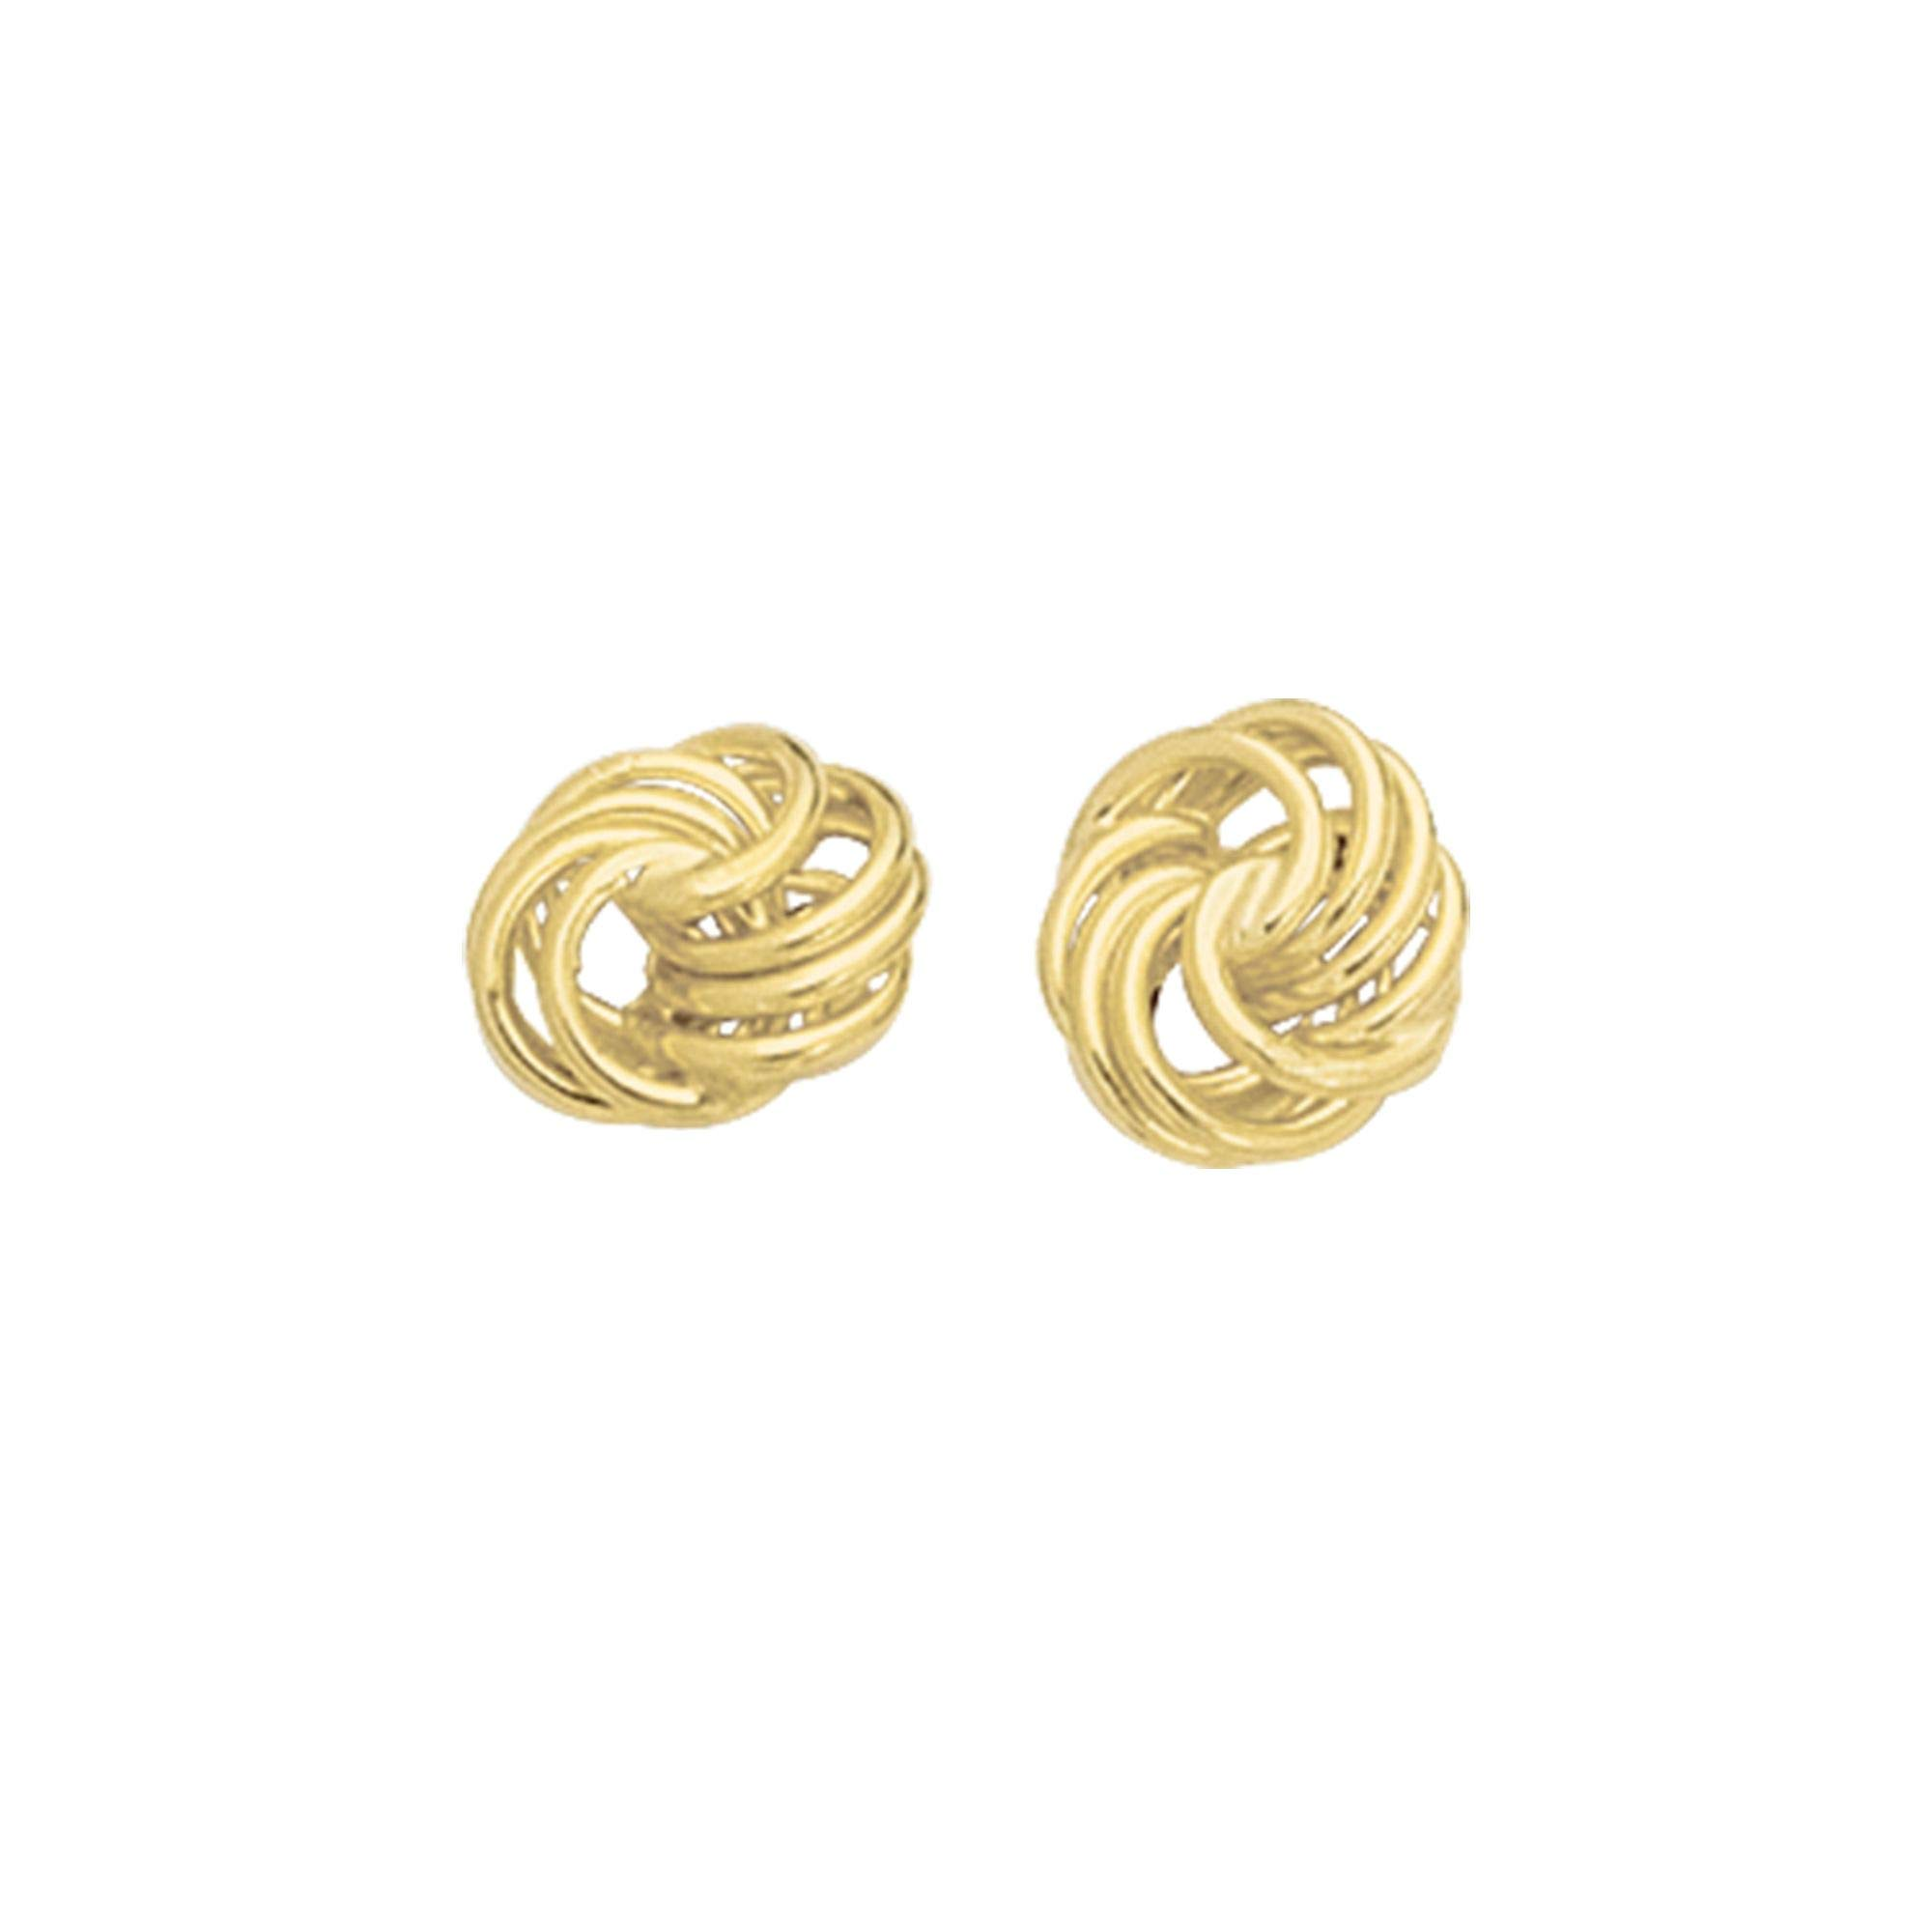 14K Yellow Gold Shiny Textured 4 Row Love Knot Earrings by IcedTime